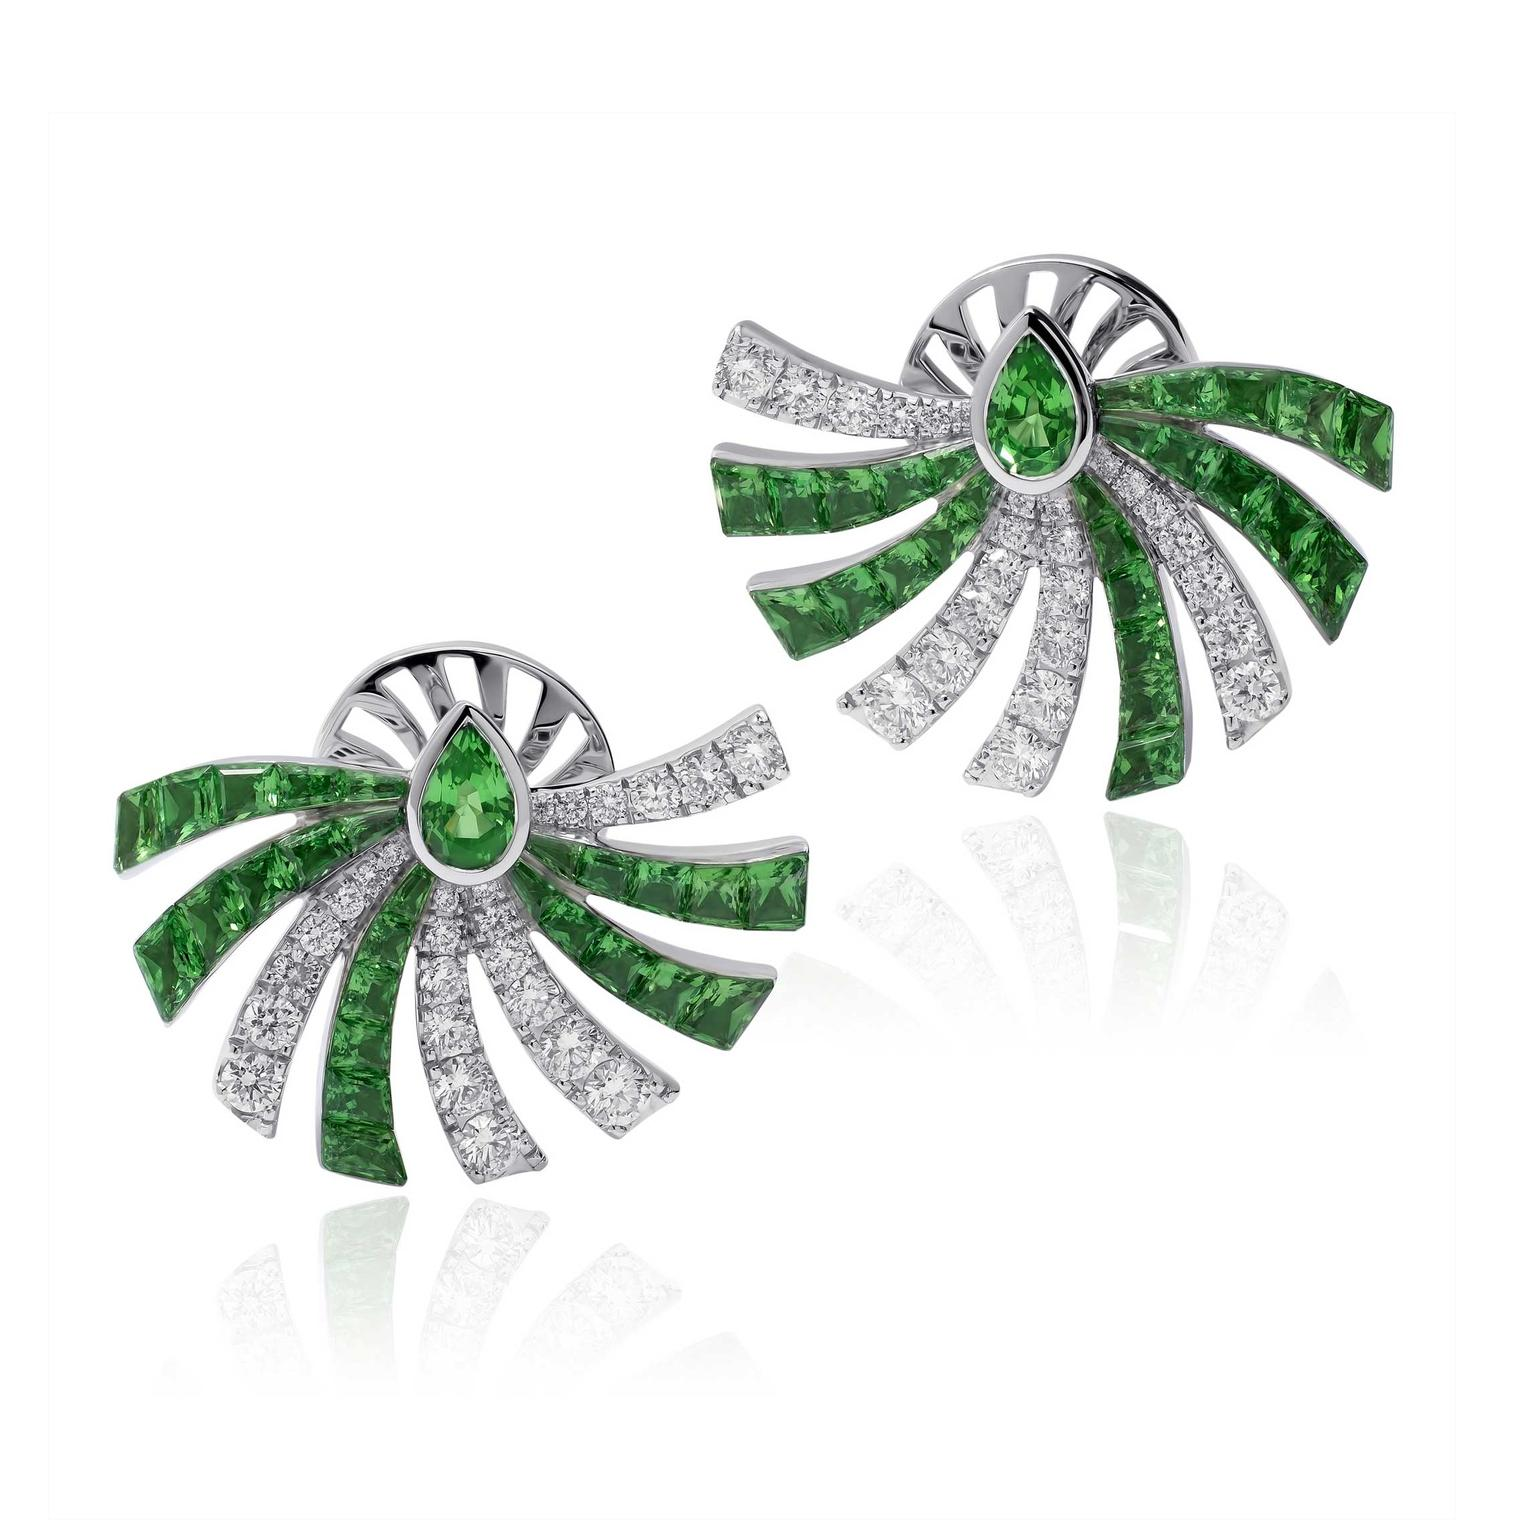 Stenzhorn Persuasion stud earrings in white gold with tsavorites and diamonds